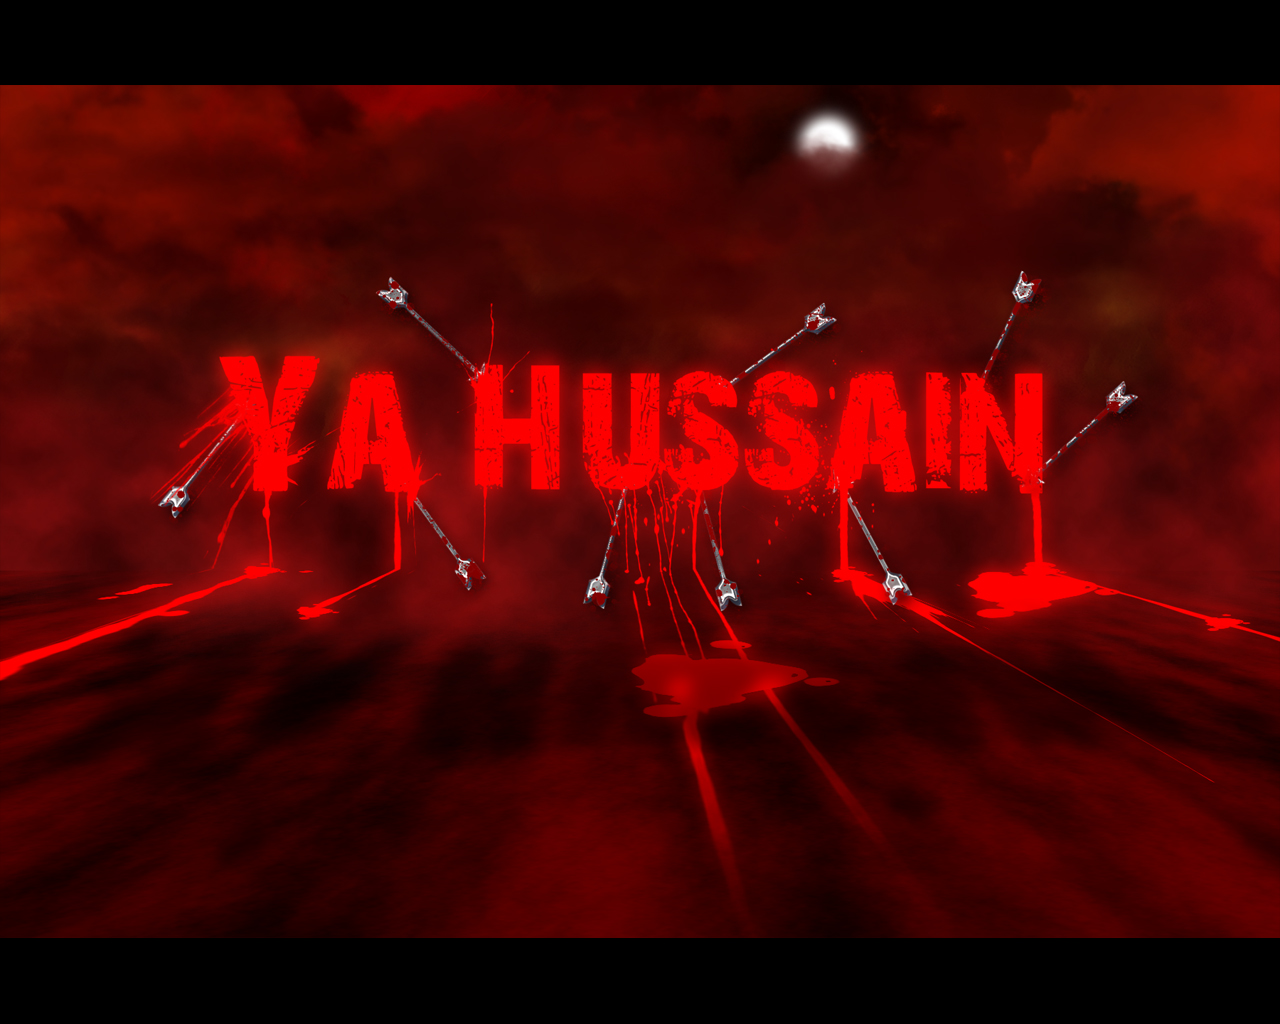 Posted by Muhammad Ali at 07 50 No commentsLabaik Ya Hussain In English